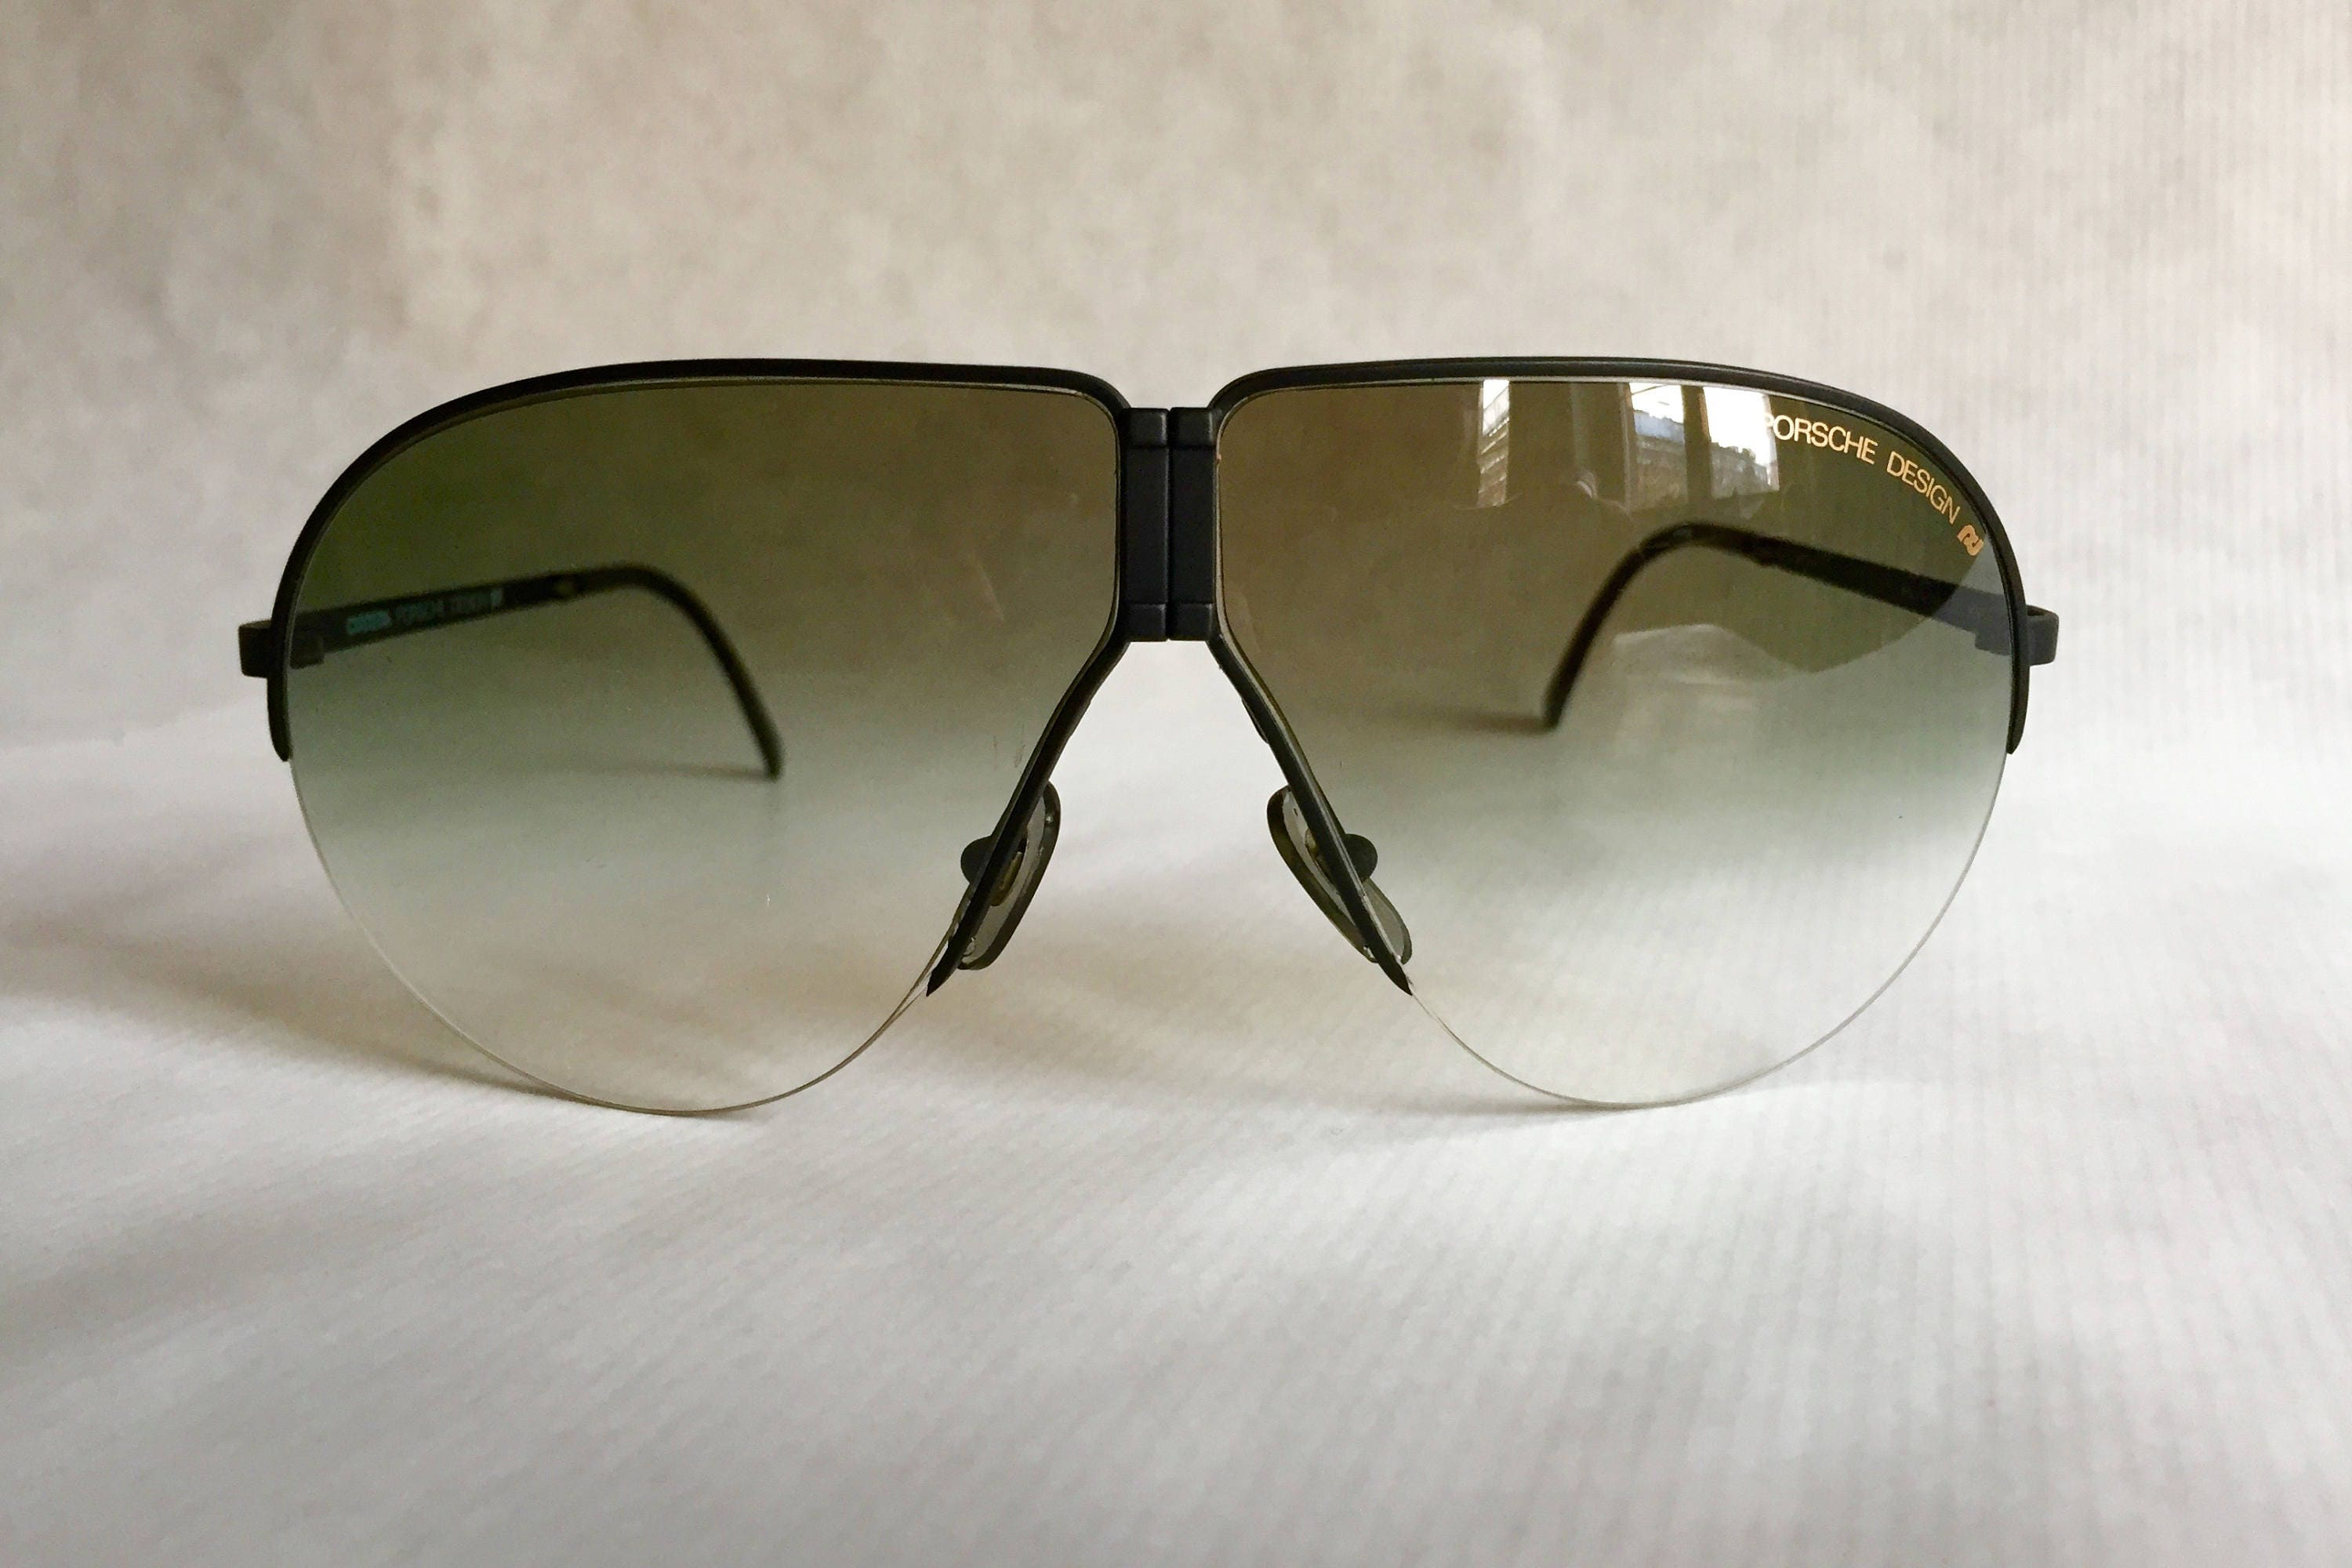 49217c7322 Porsche 5628 Folding Vintage Sunglasses including Case   Spare Lenses - New  Old Stock. gallery photo ...